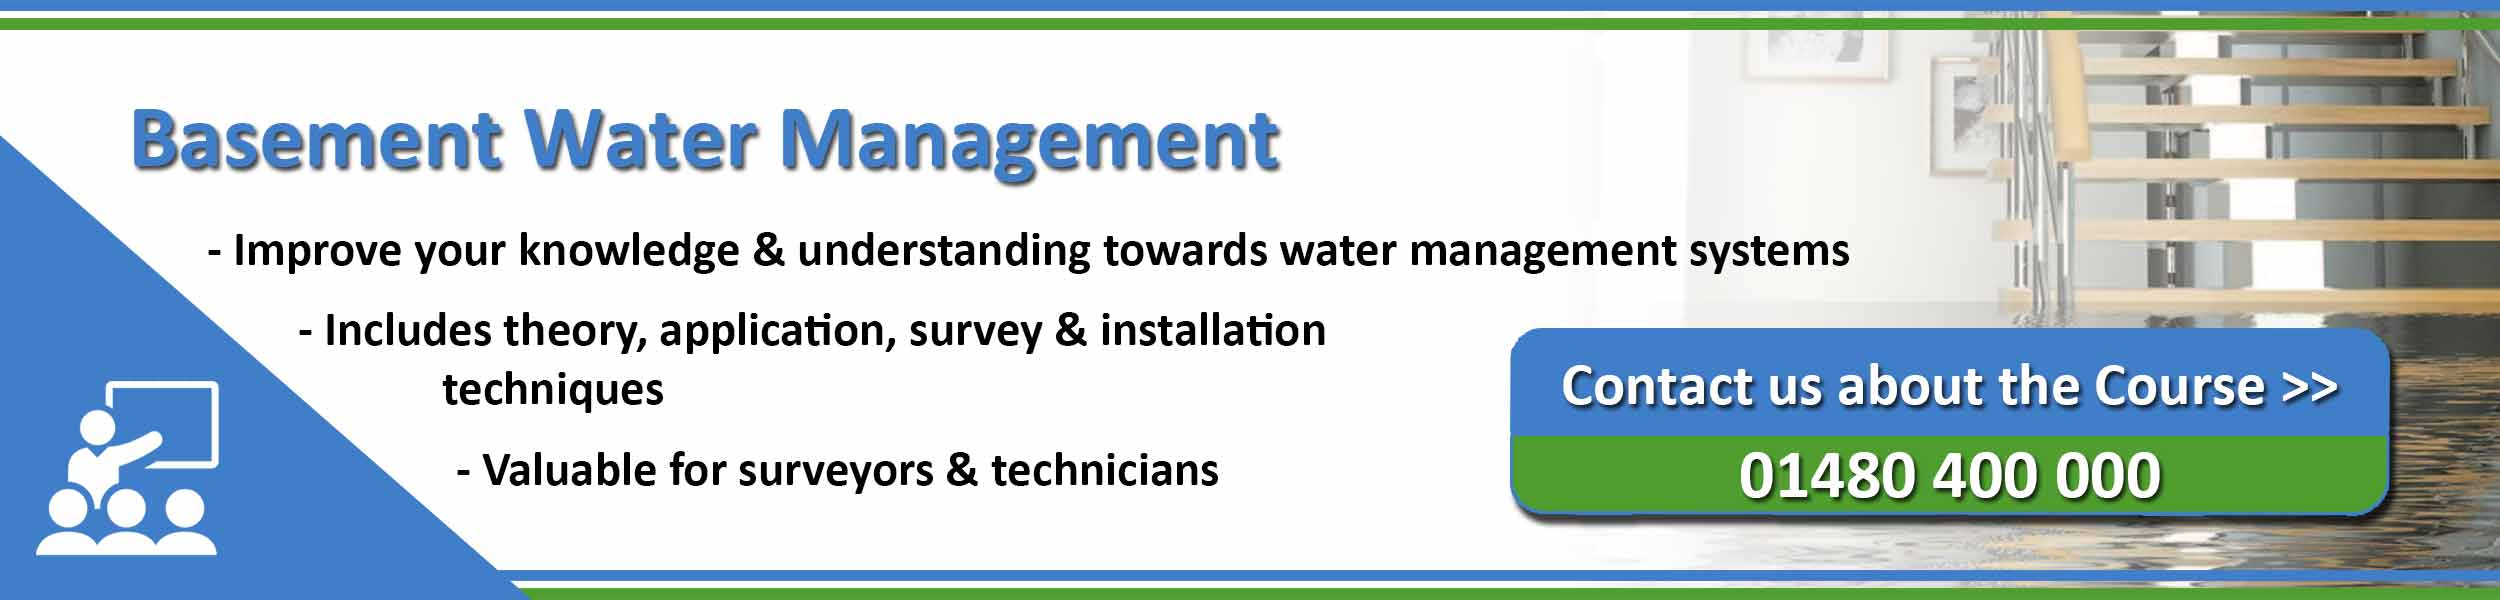 Basement Water Management Training from the PCA